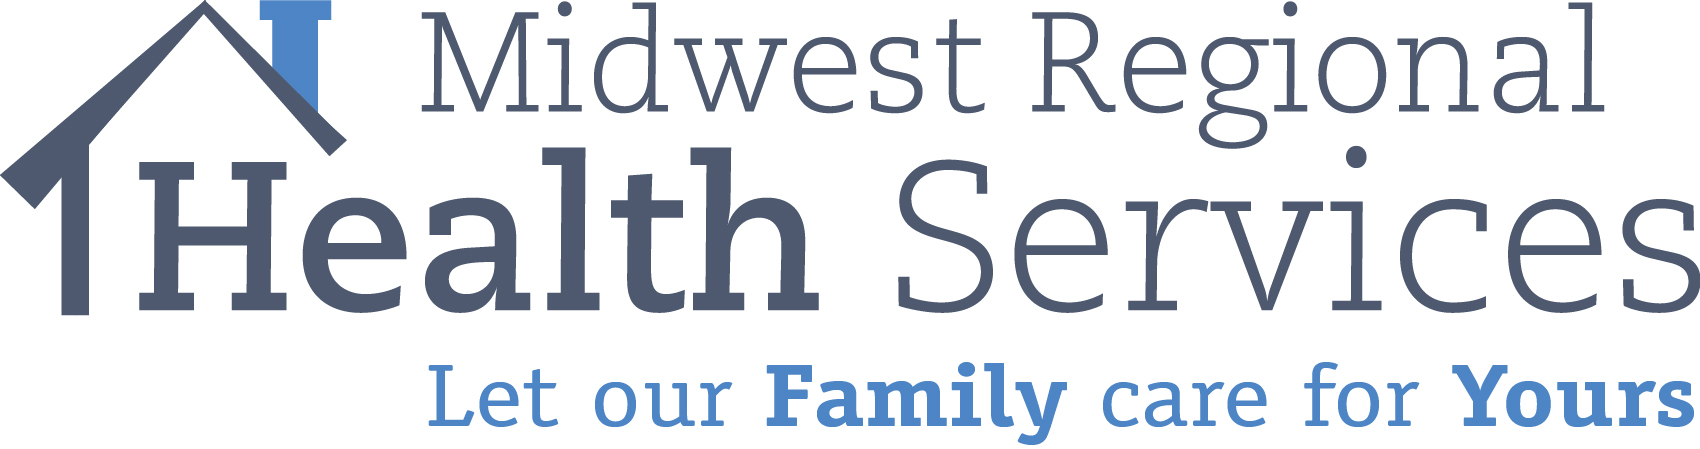 Midwest Regional Health Services